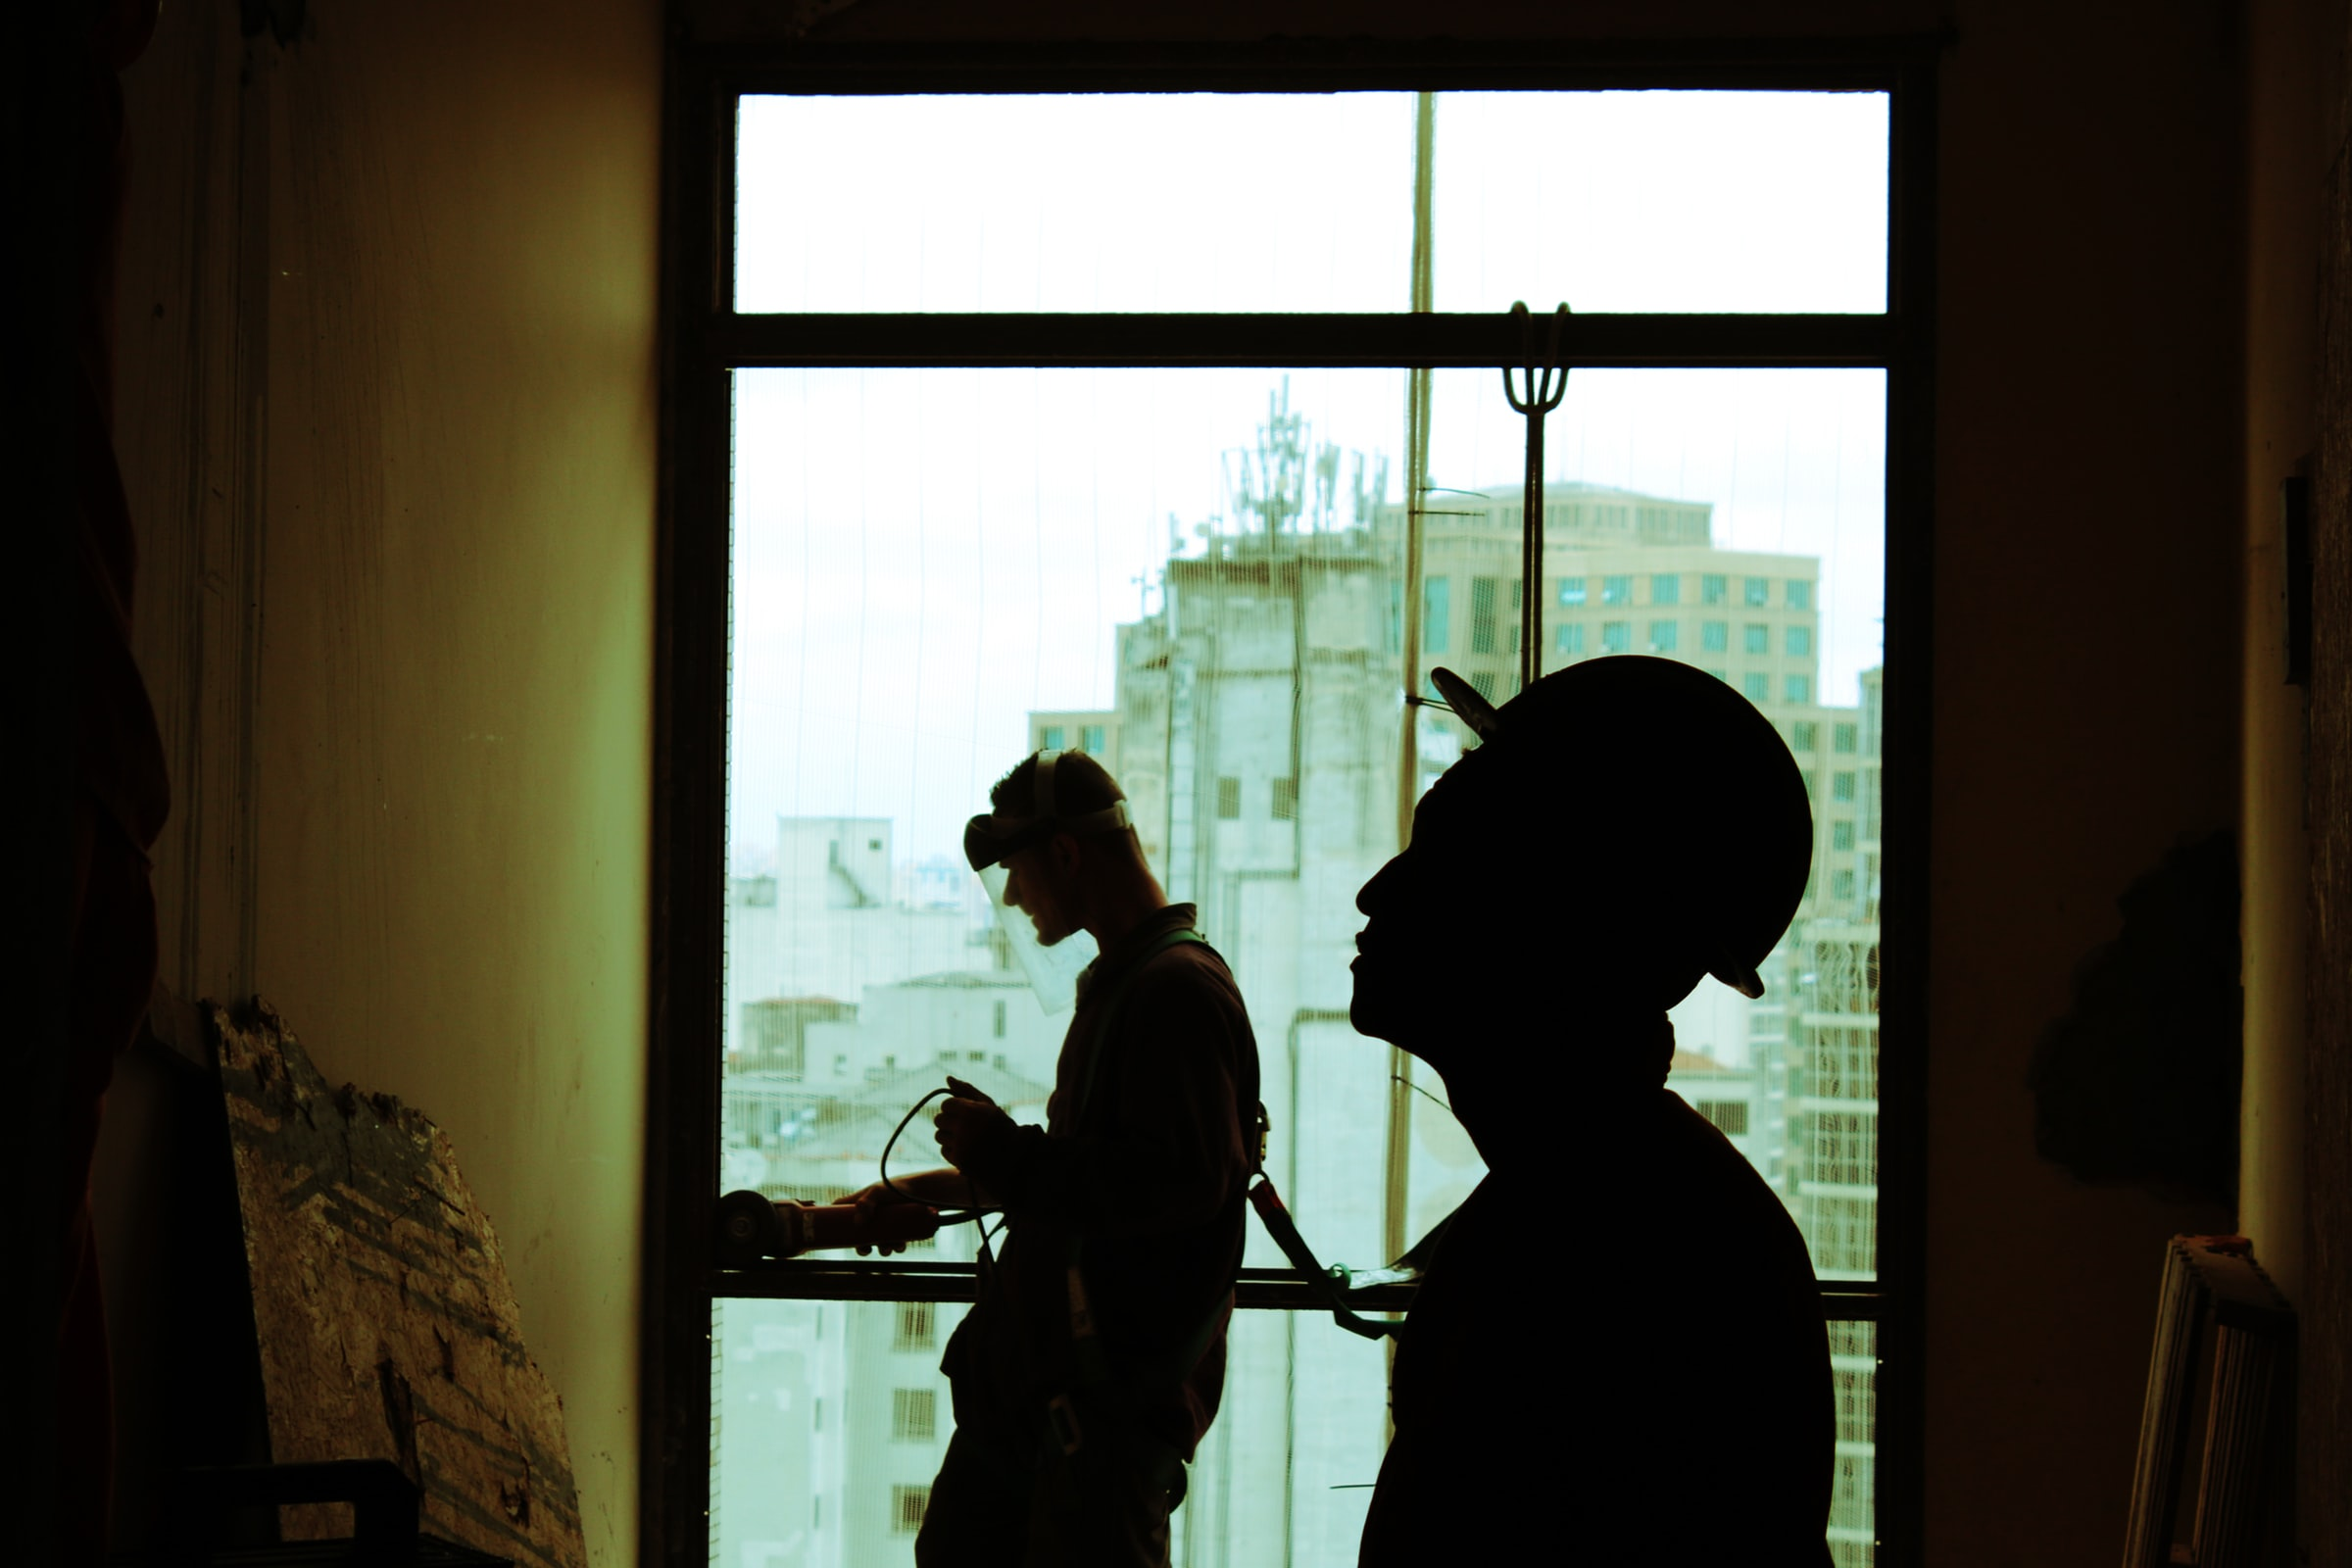 Photo of construction workers in silhouette